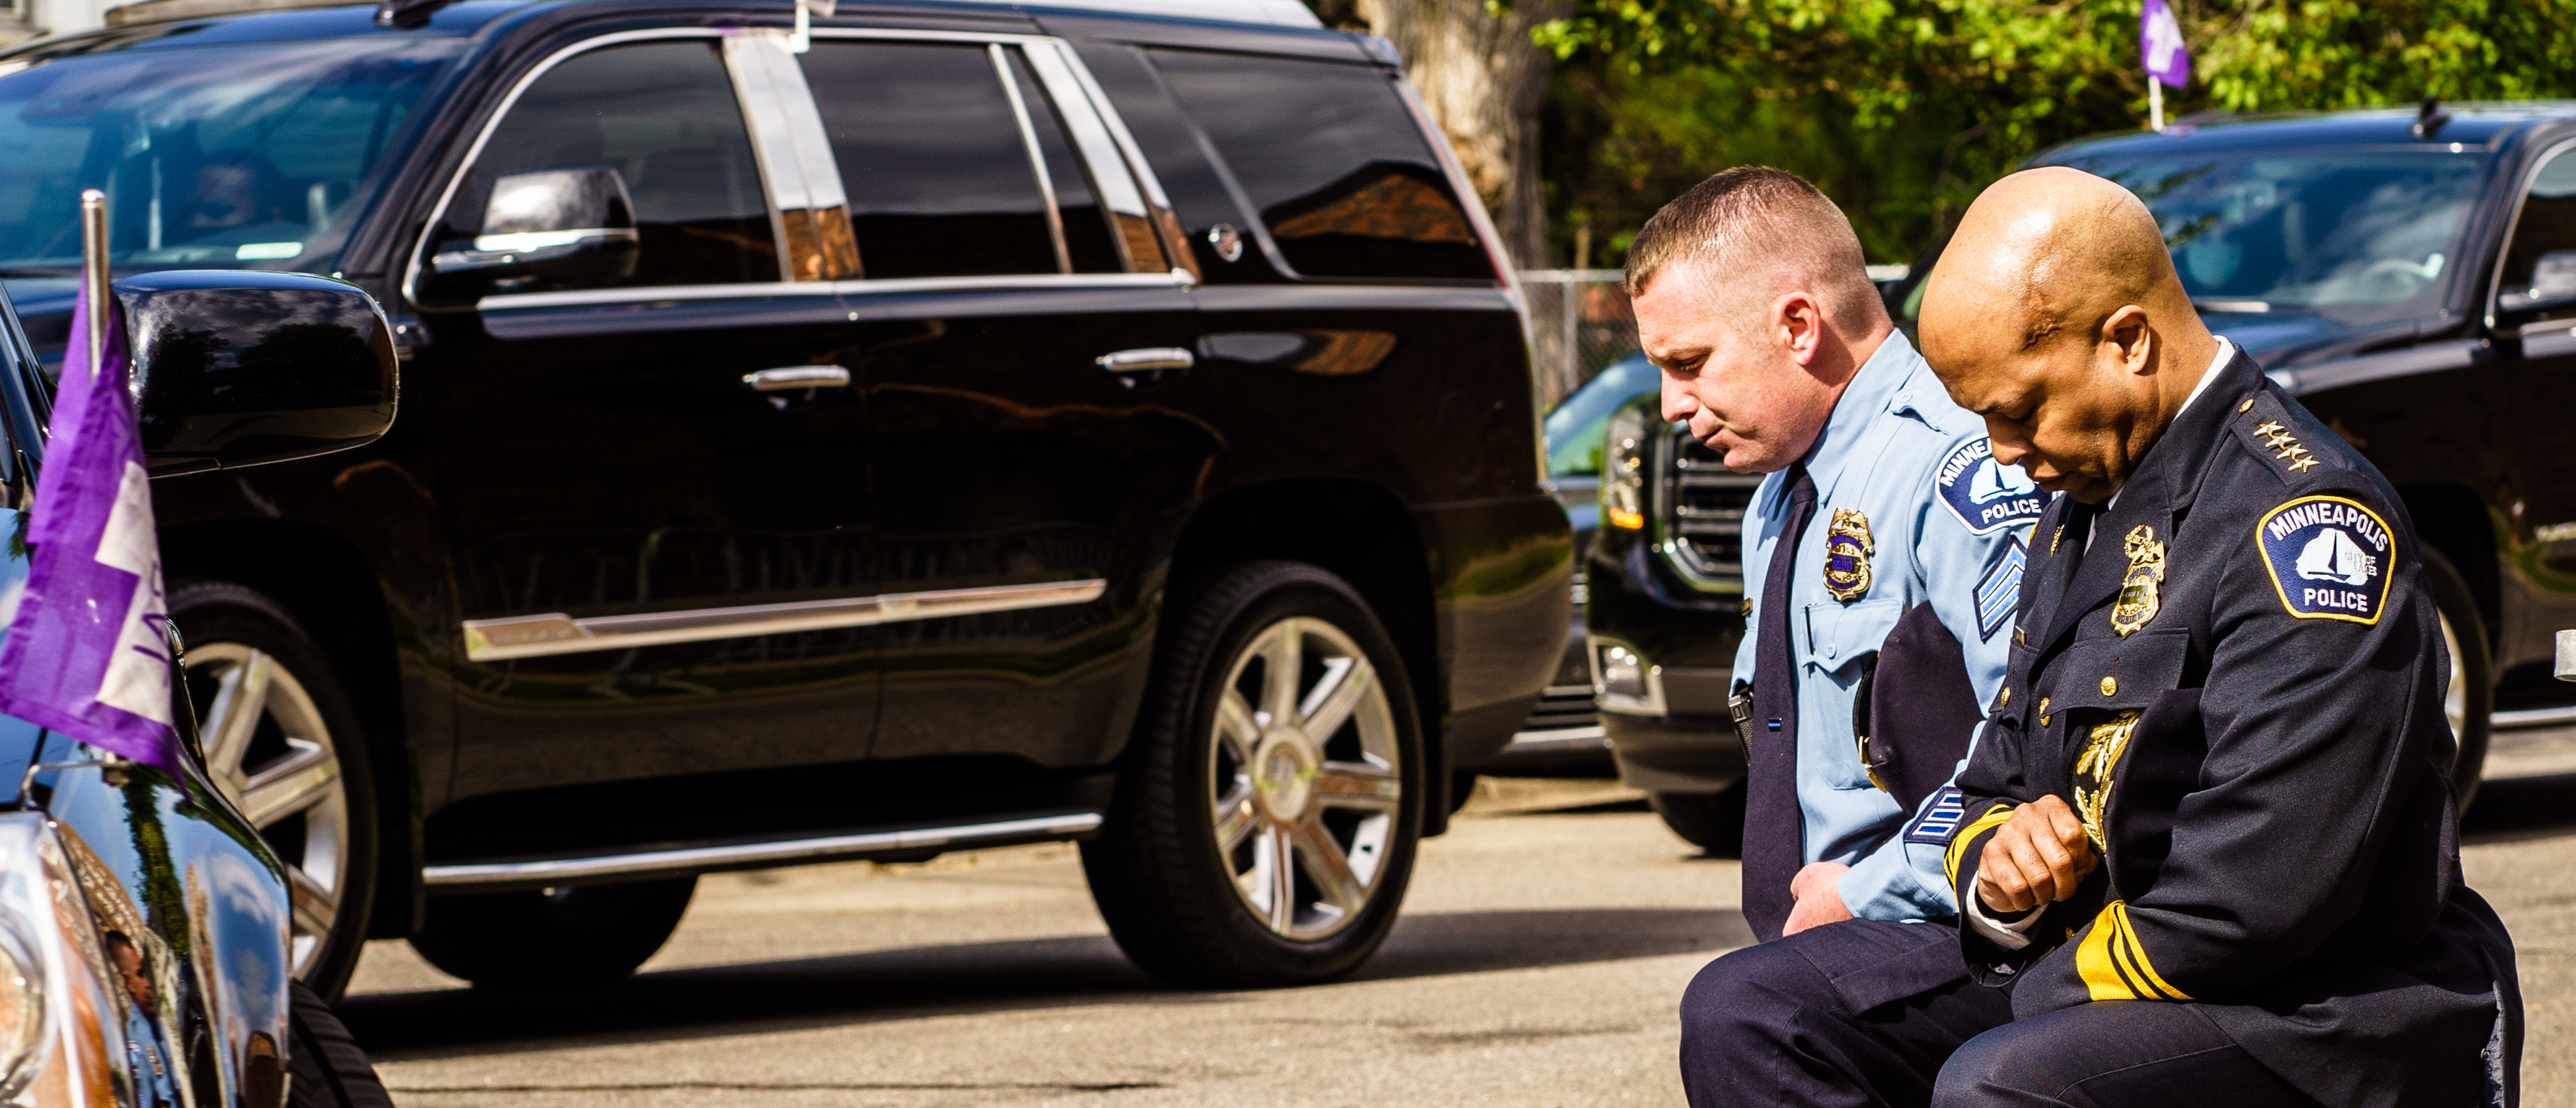 TOPSHOT - Minneapolis Police Chief Medaria Arradondo (R) kneels as the remains of George Floyd are taken to a memorial service in his honor on June 4, 2020, in Minneapolis, Minnesota. - On May 25, 2020, Floyd, a 46-year-old black man suspected of passing a counterfeit $20 bill, died in Minneapolis after Derek Chauvin, a white police officer, pressed his knee to Floyd's neck for almost nine minutes. (Photo by kerem yucel / AFP) (Photo by KEREM YUCEL/AFP via Getty Images)